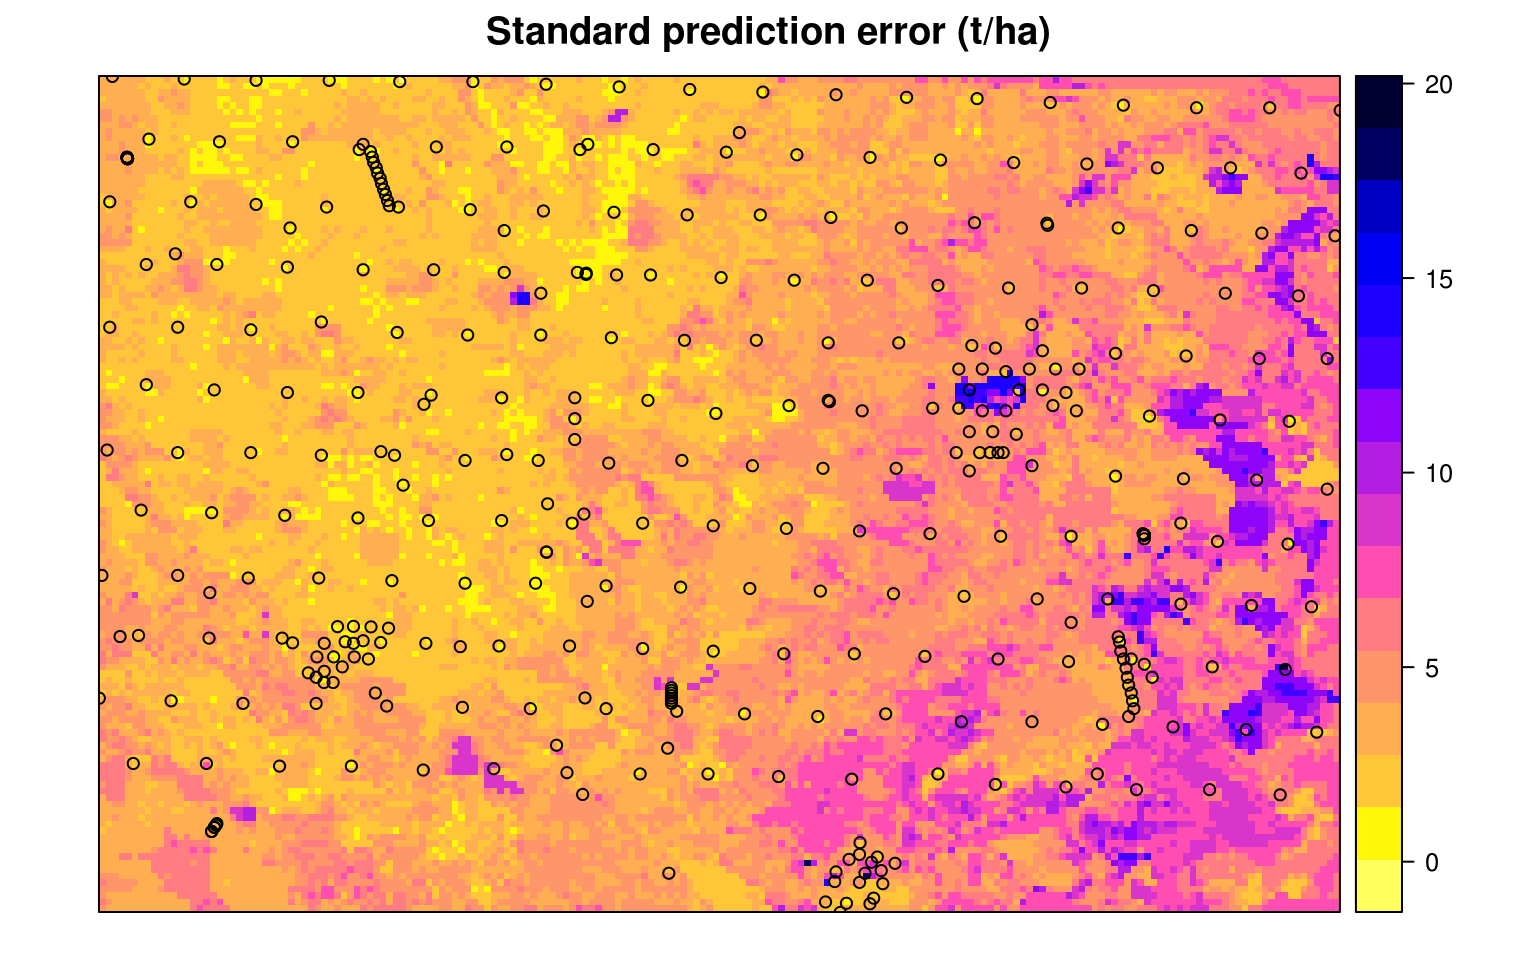 The prediction error map for the Edgeroi data set.